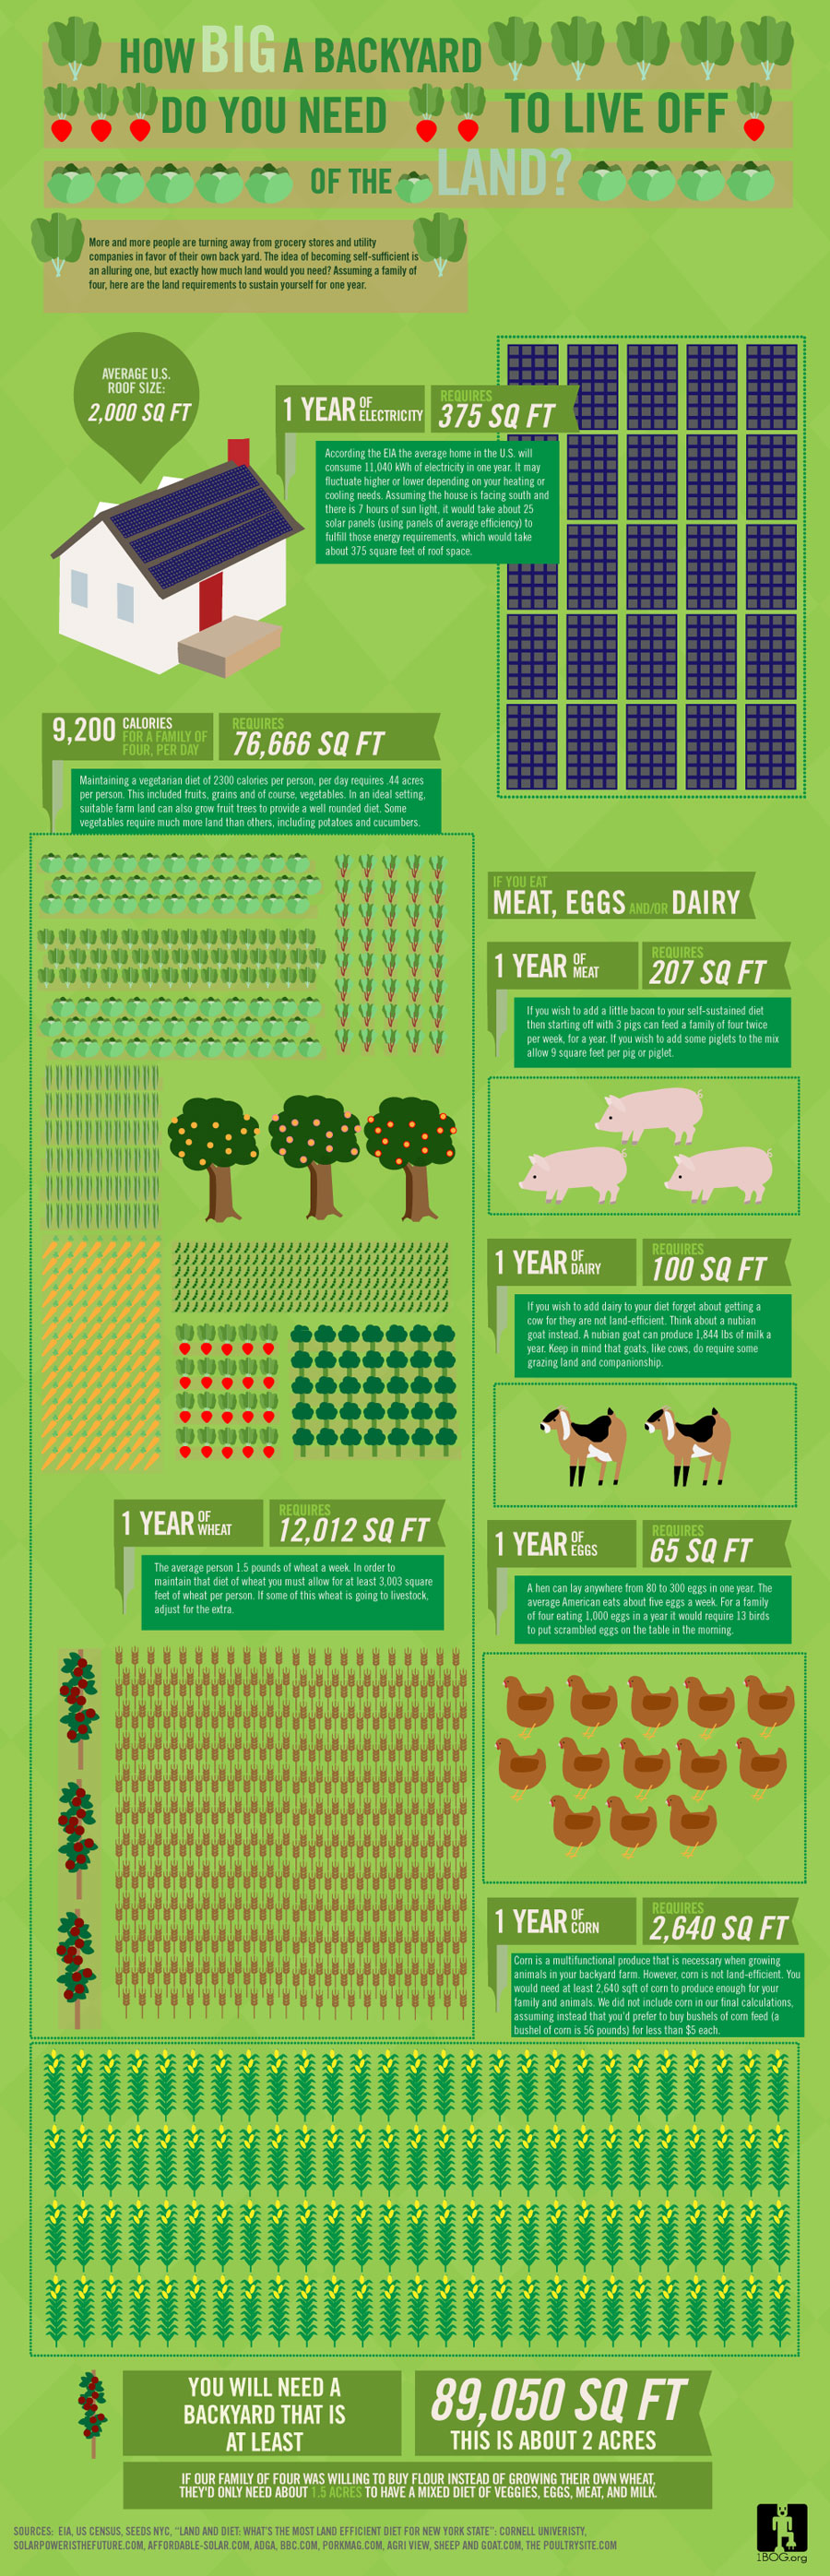 How Big a Backyard Would You Need to Live Off the Land?